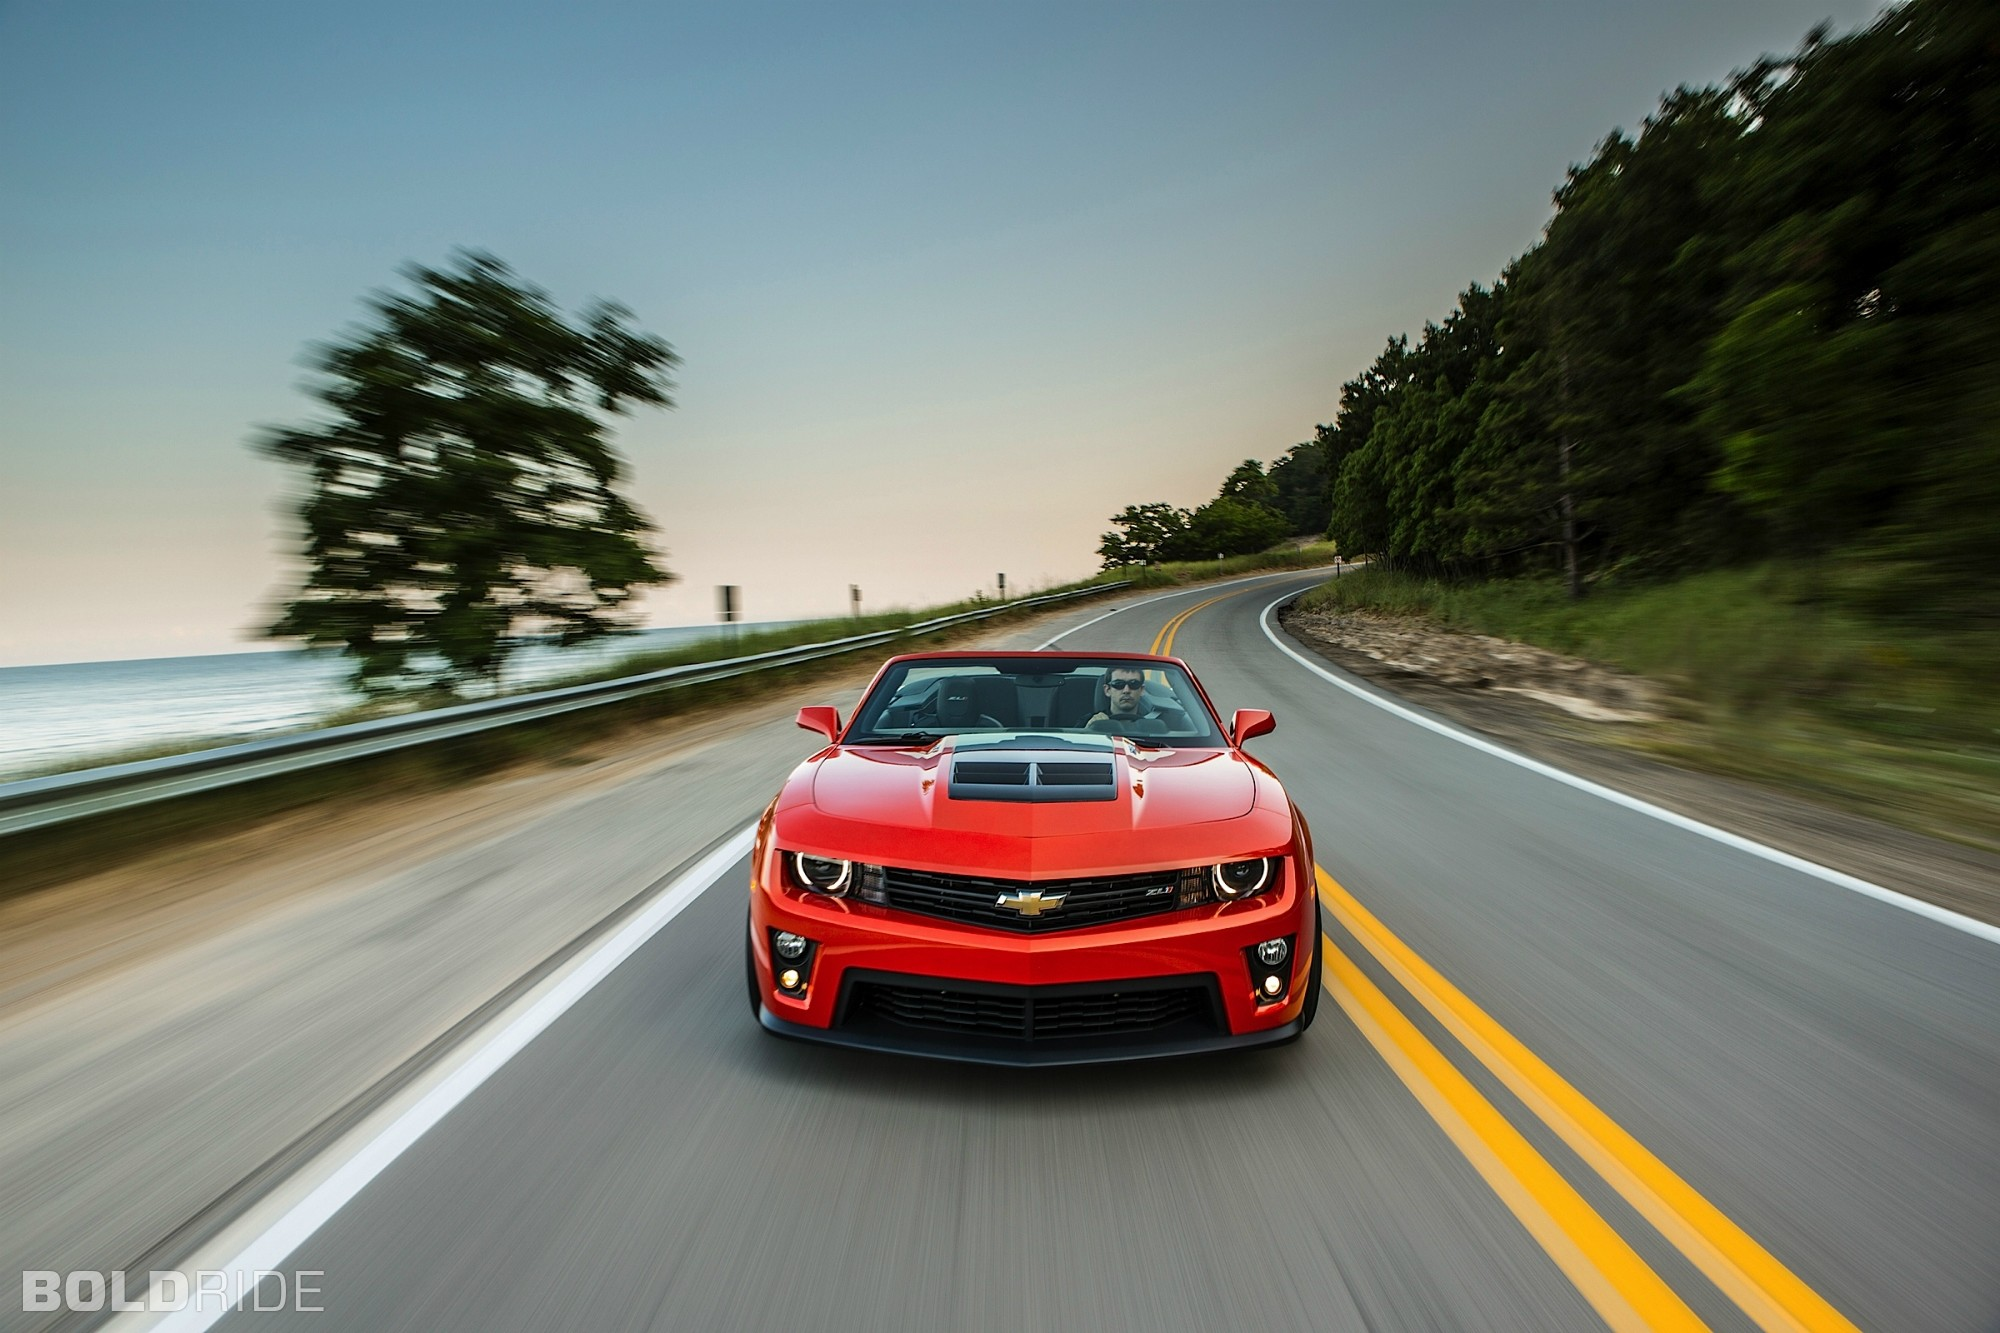 Res: 2000x1333, 2013 Chevrolet Camaro ZL1 Convertible muscle cars s wallpaper |  |  79145 | WallpaperUP